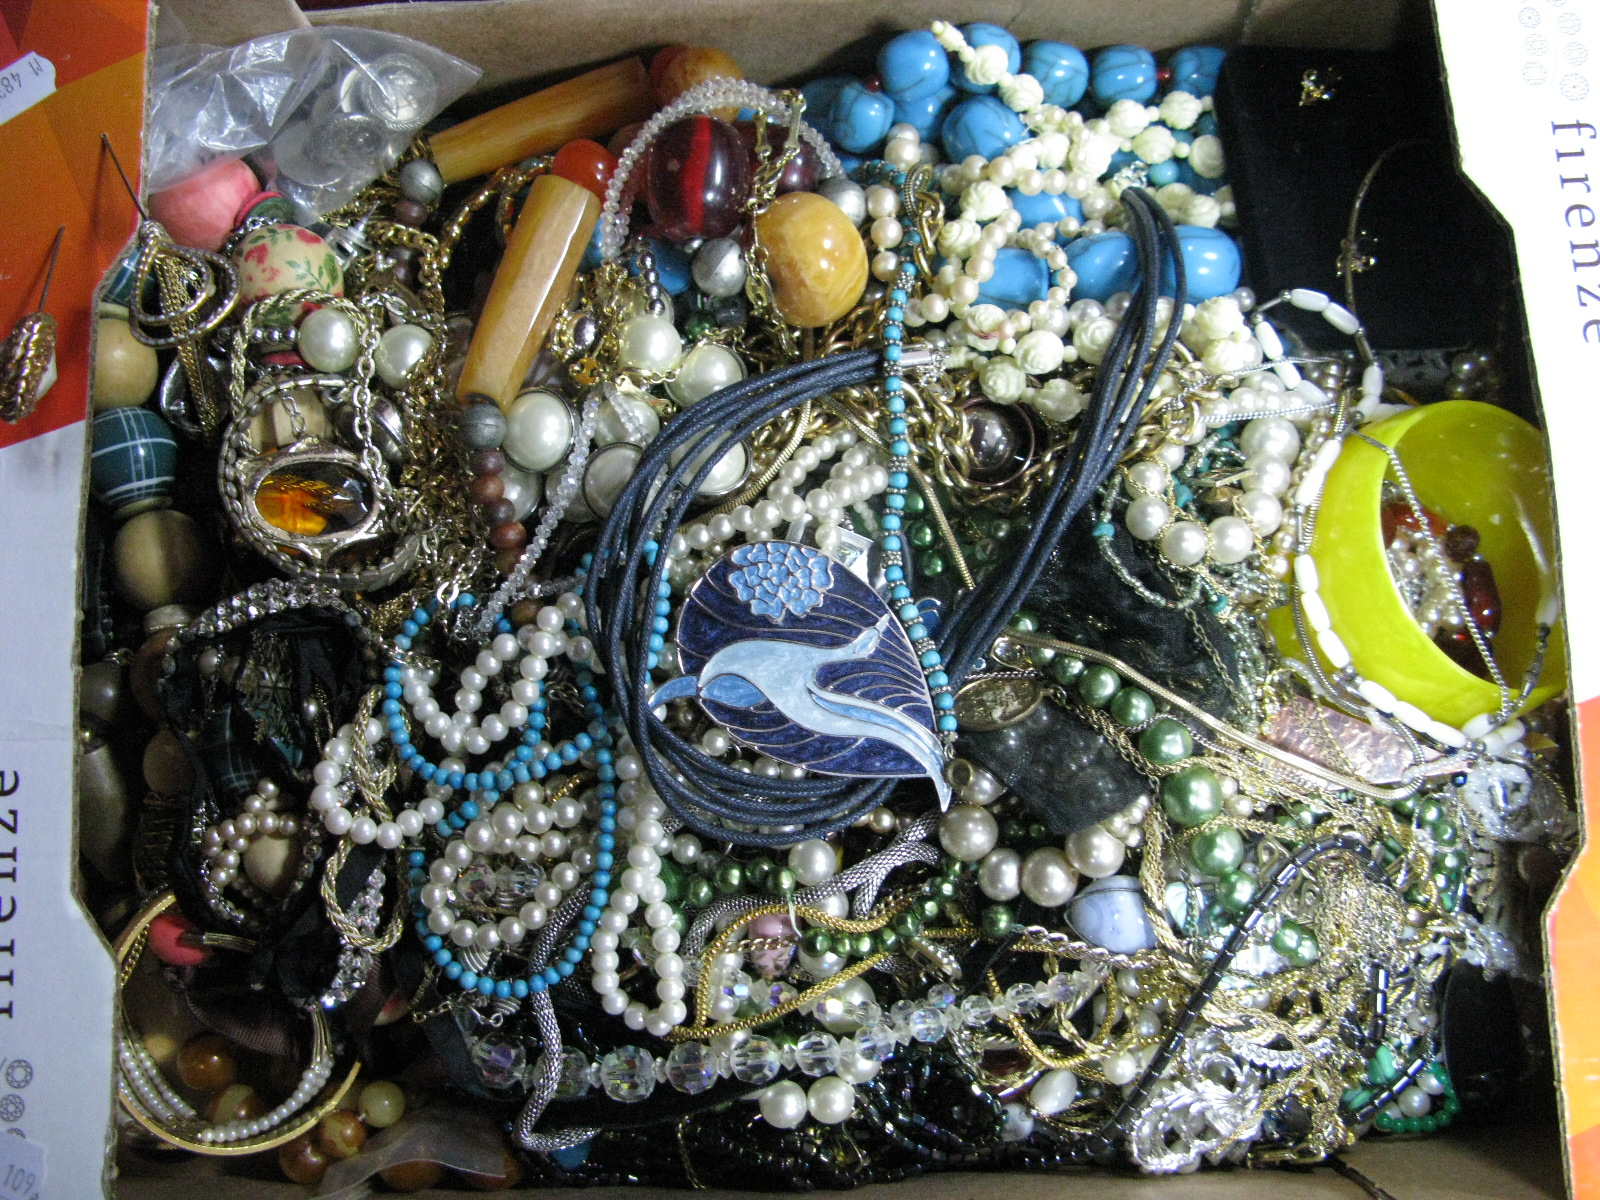 Lot 1064 - A Mixed Lot of Assorted Costume Jewellery, including beads, chains, bangle, hat pins, etc:- One Box